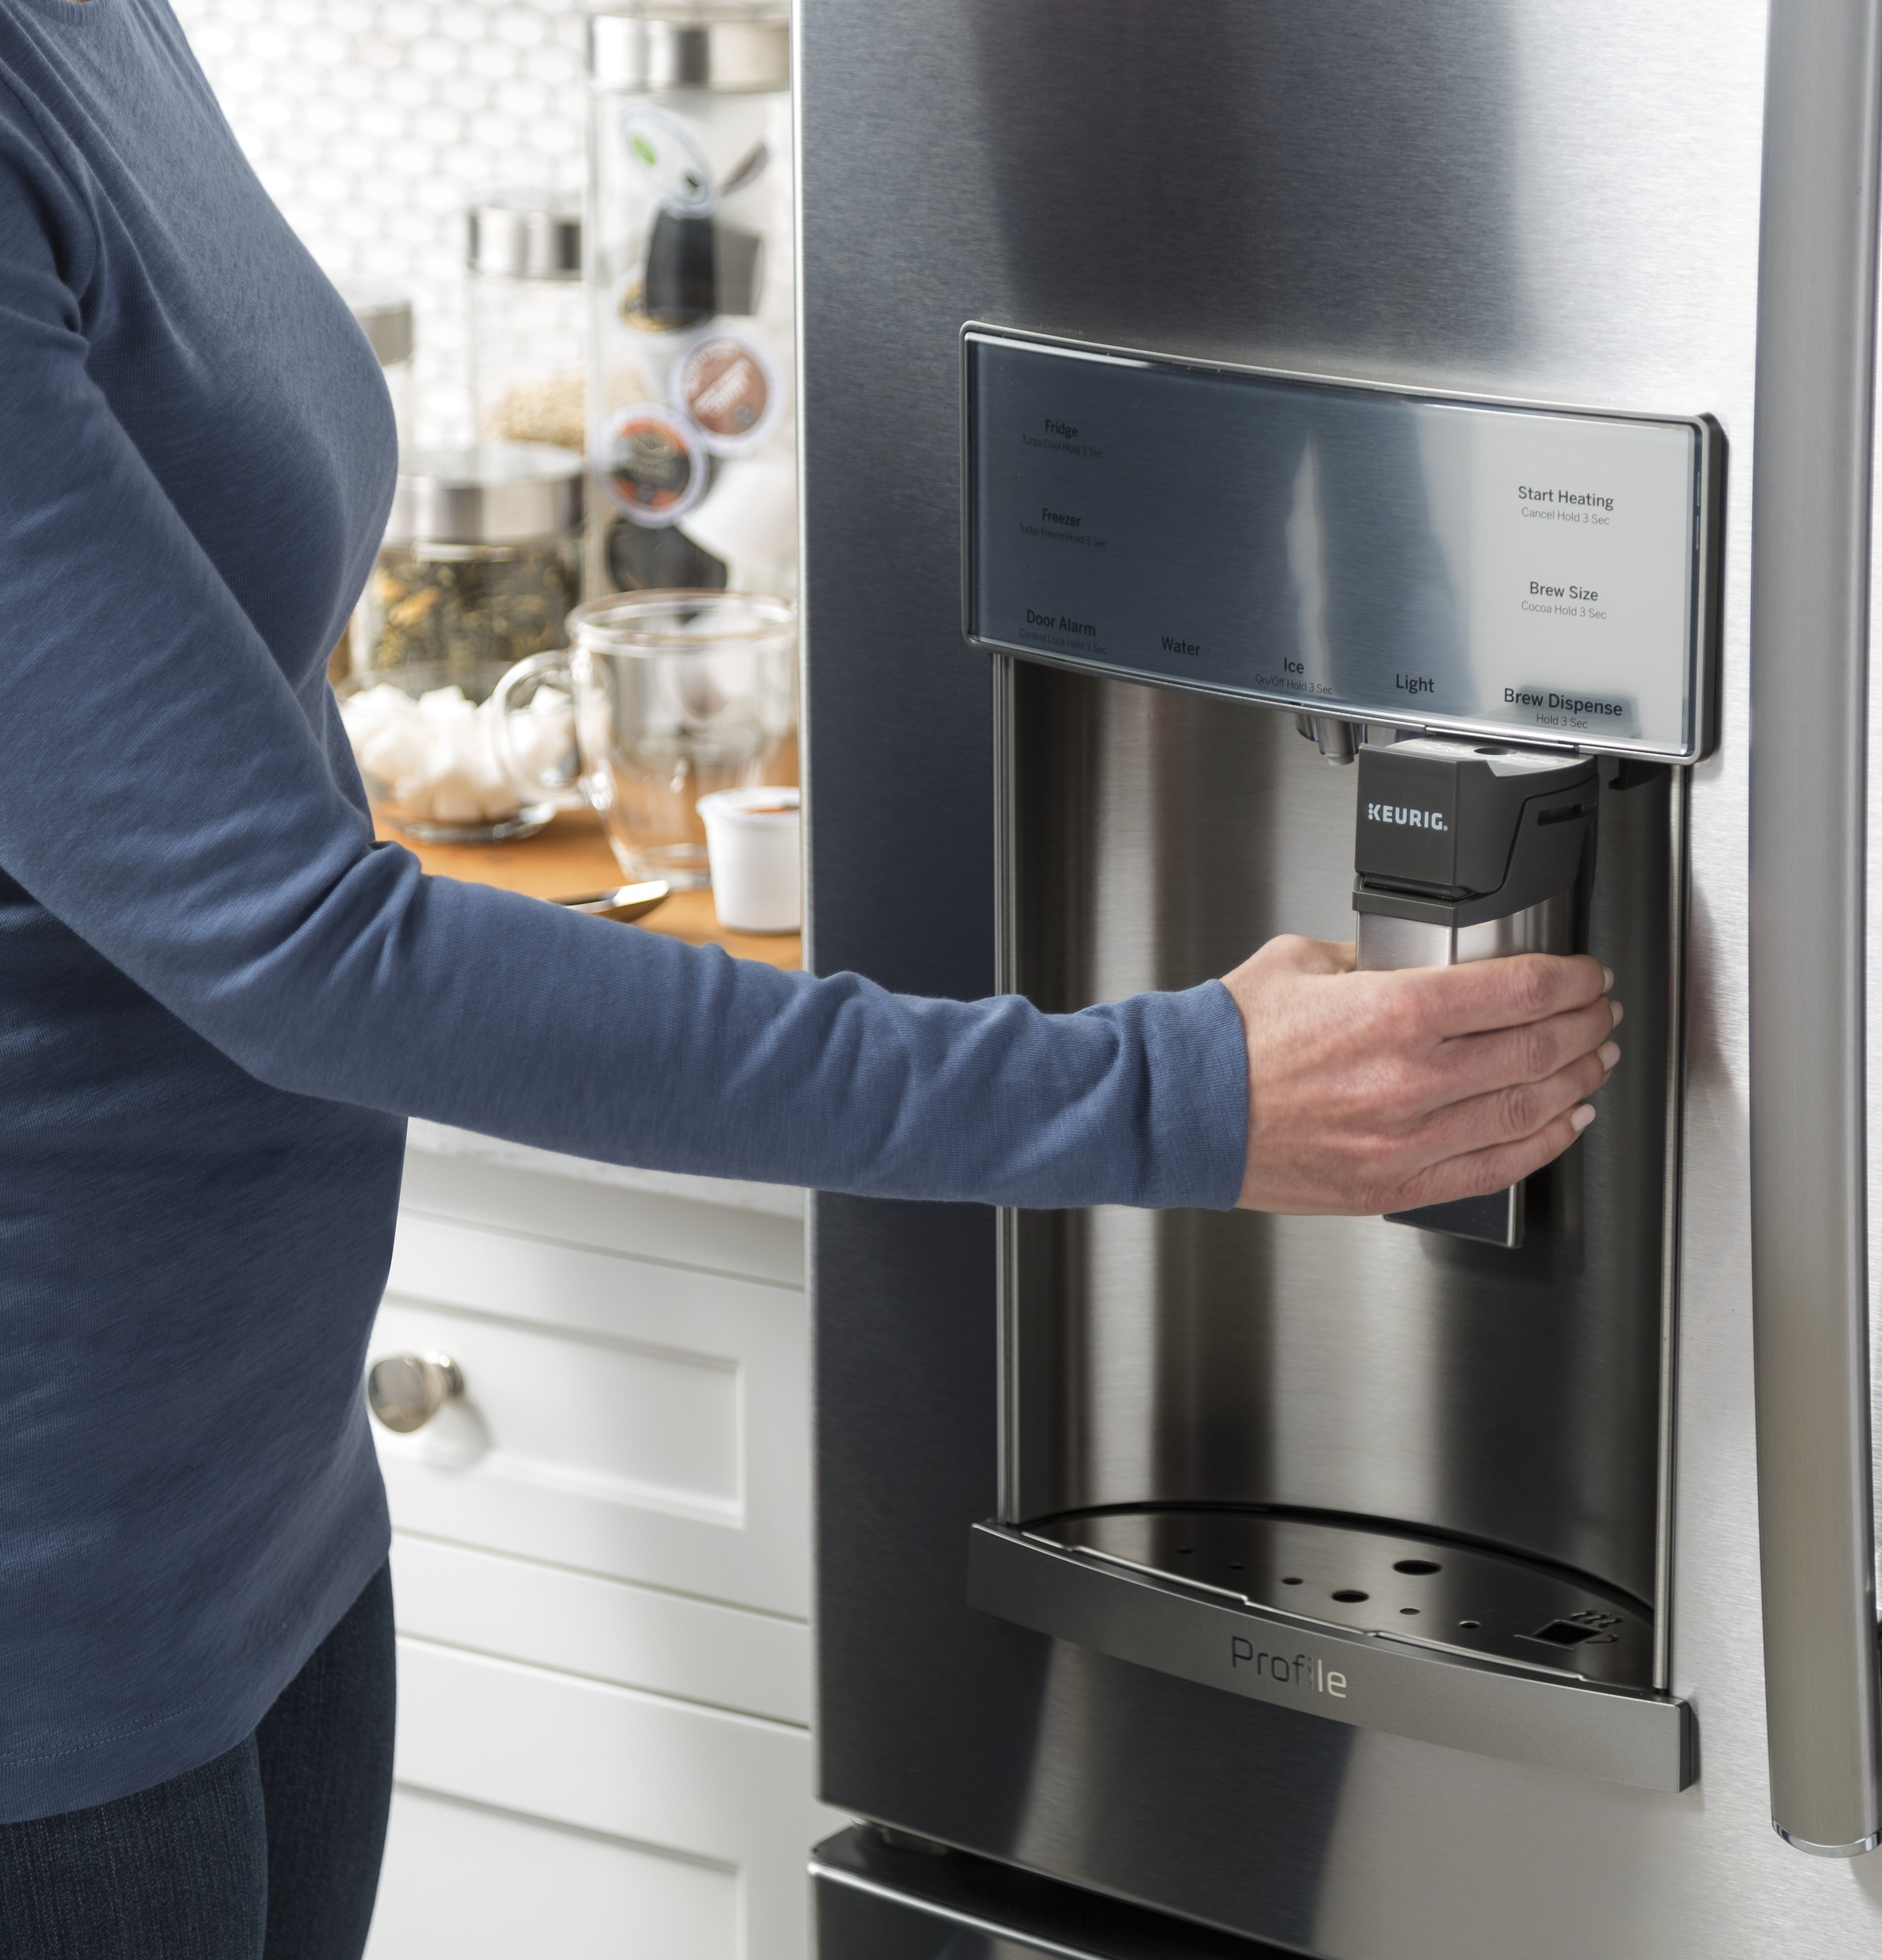 Model: PYE22PMKES | GE Profile™ Series ENERGY STAR® 22.2 Cu. Ft. Counter-Depth French-Door Refrigerator with Keurig® K-Cup® Brewing System